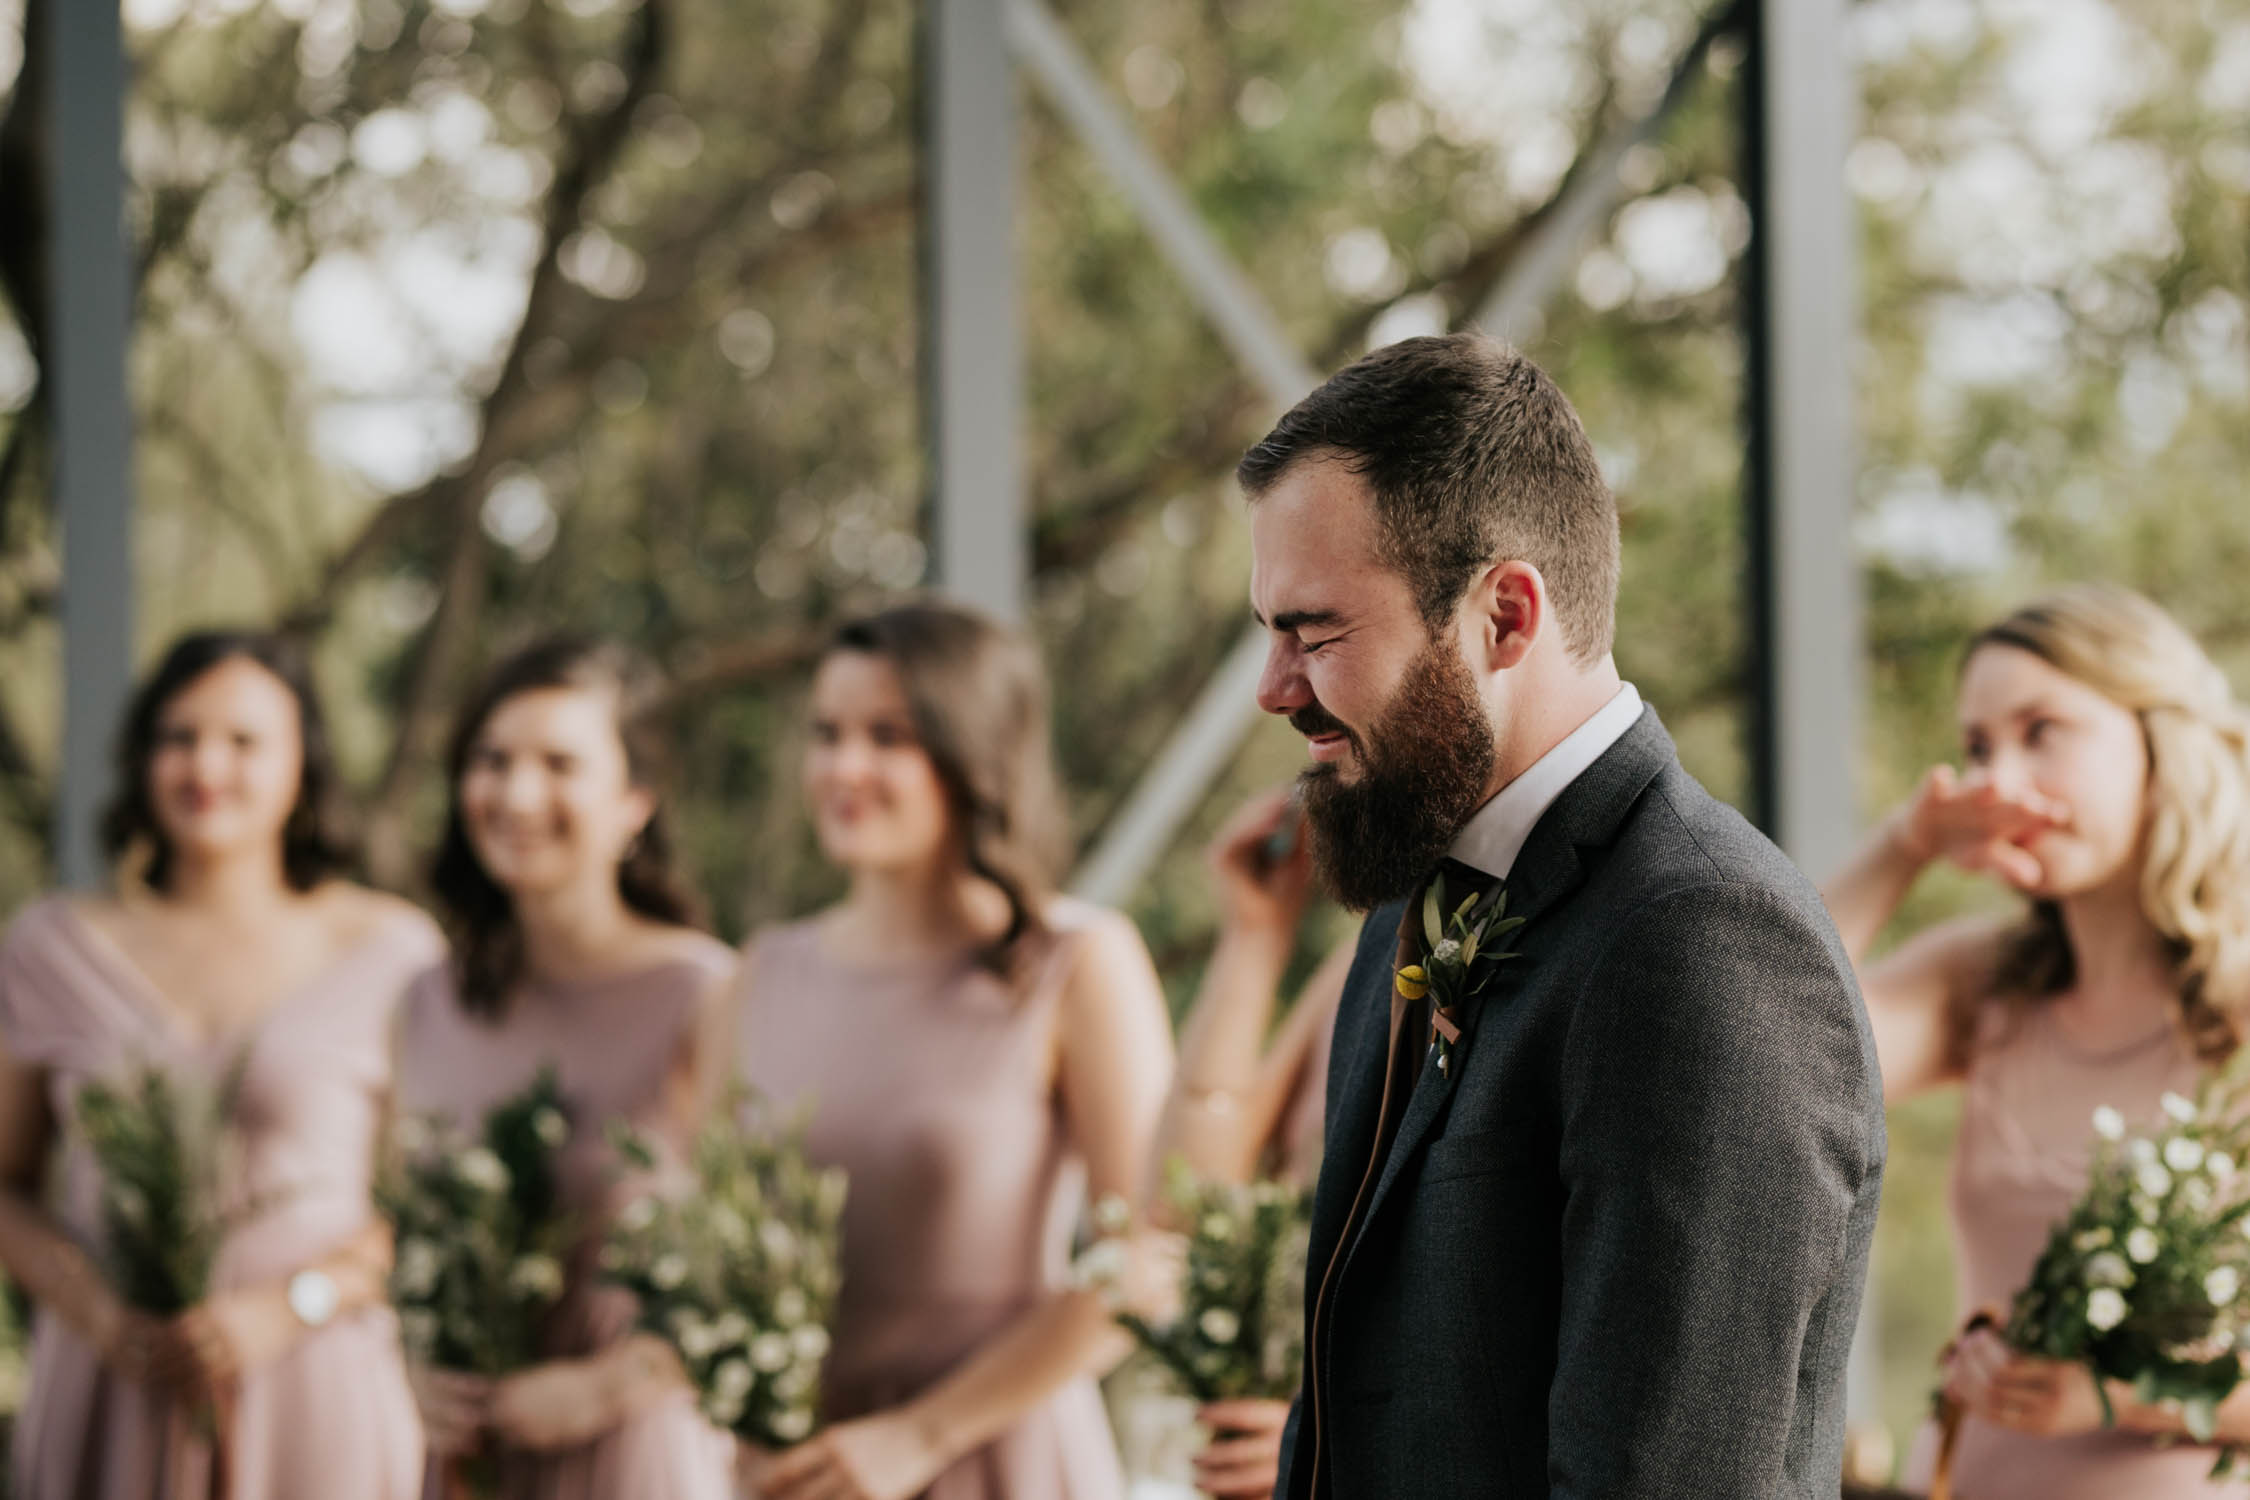 Groom's emotional reaction as he watches his bride walk down the aisle taken by candid Vancouver Wedding Photographer